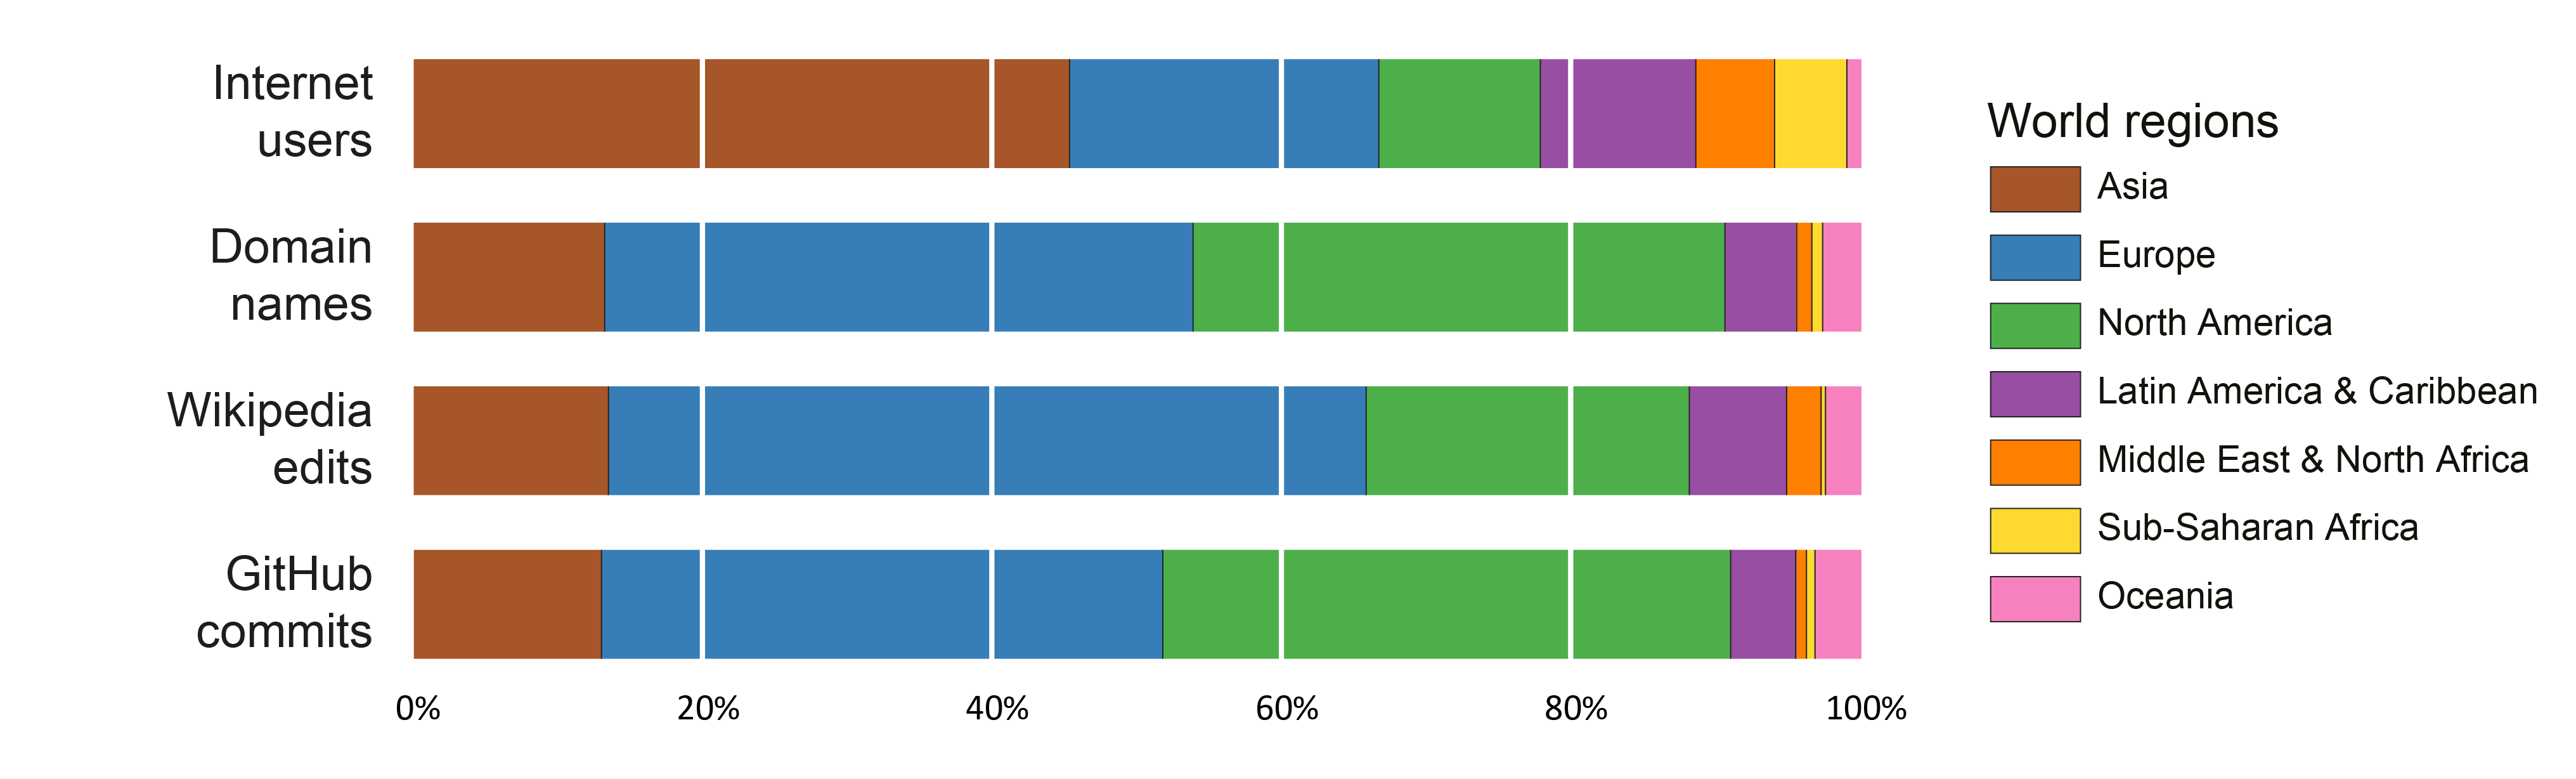 Distribution of internet users and platforms and modes of participation